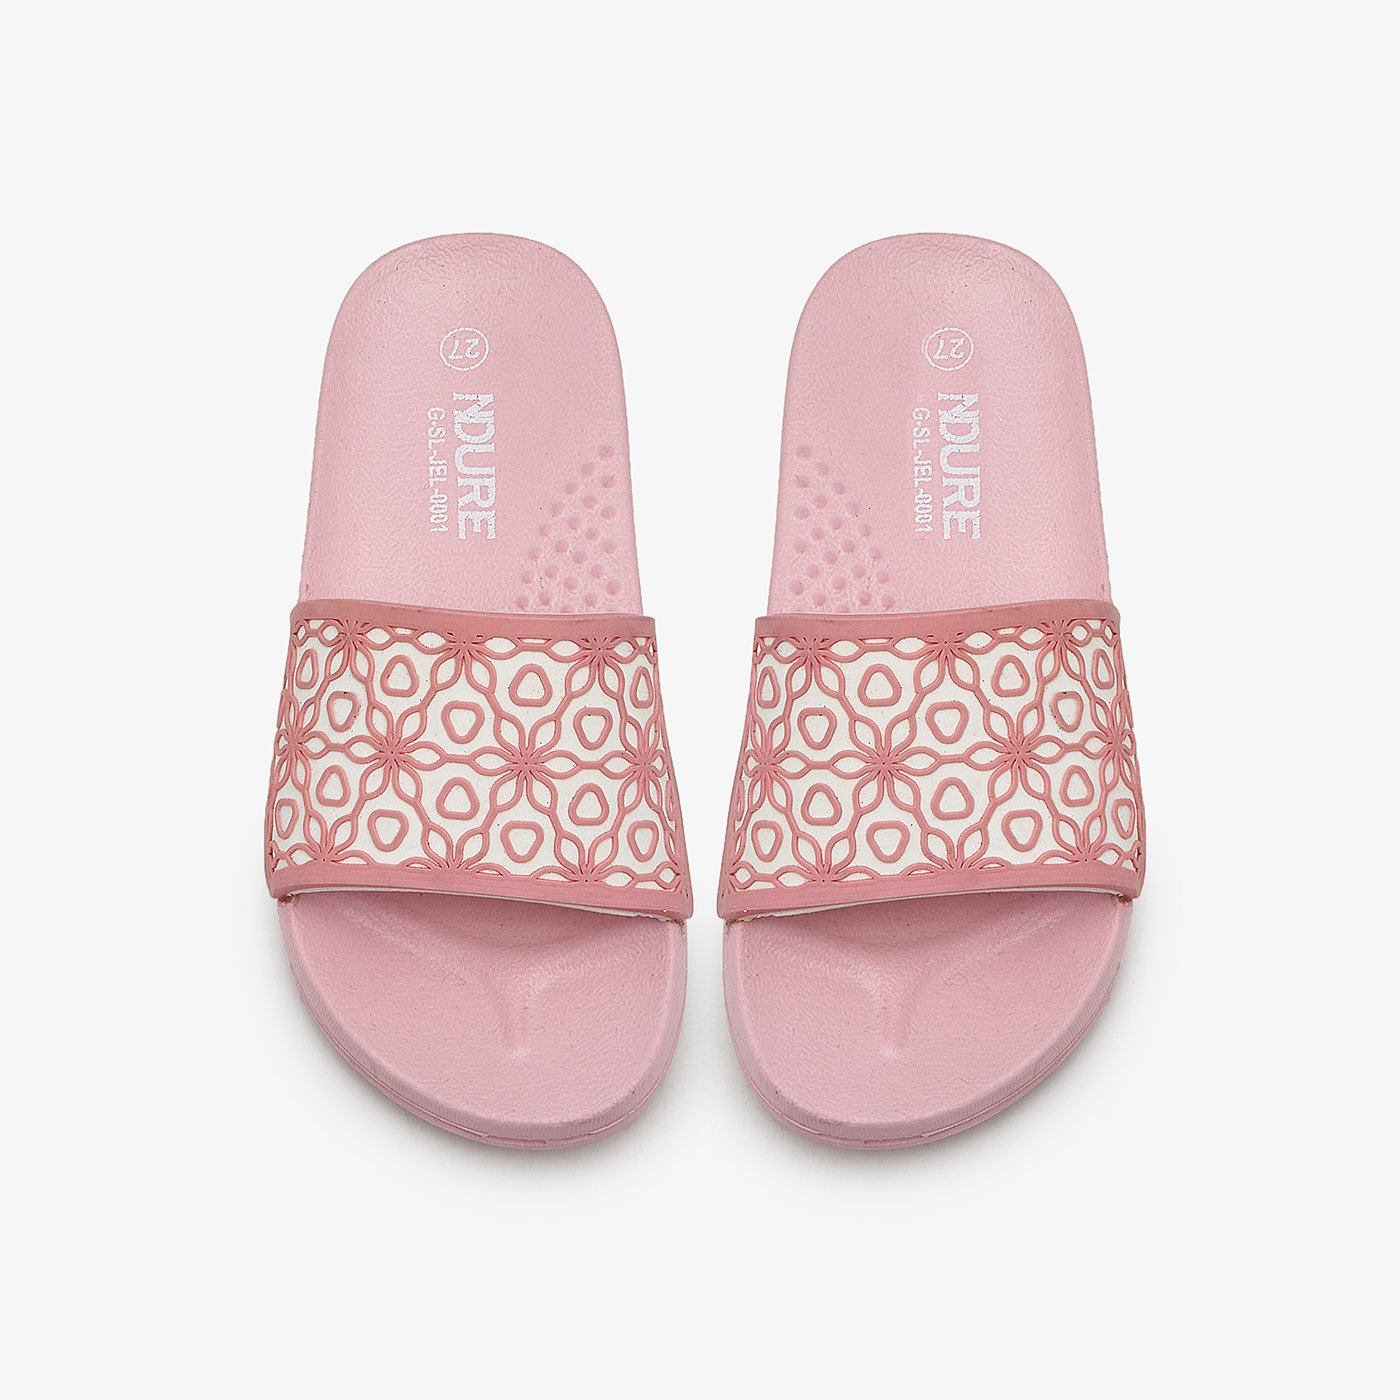 Cute Printed Chappals for Girls